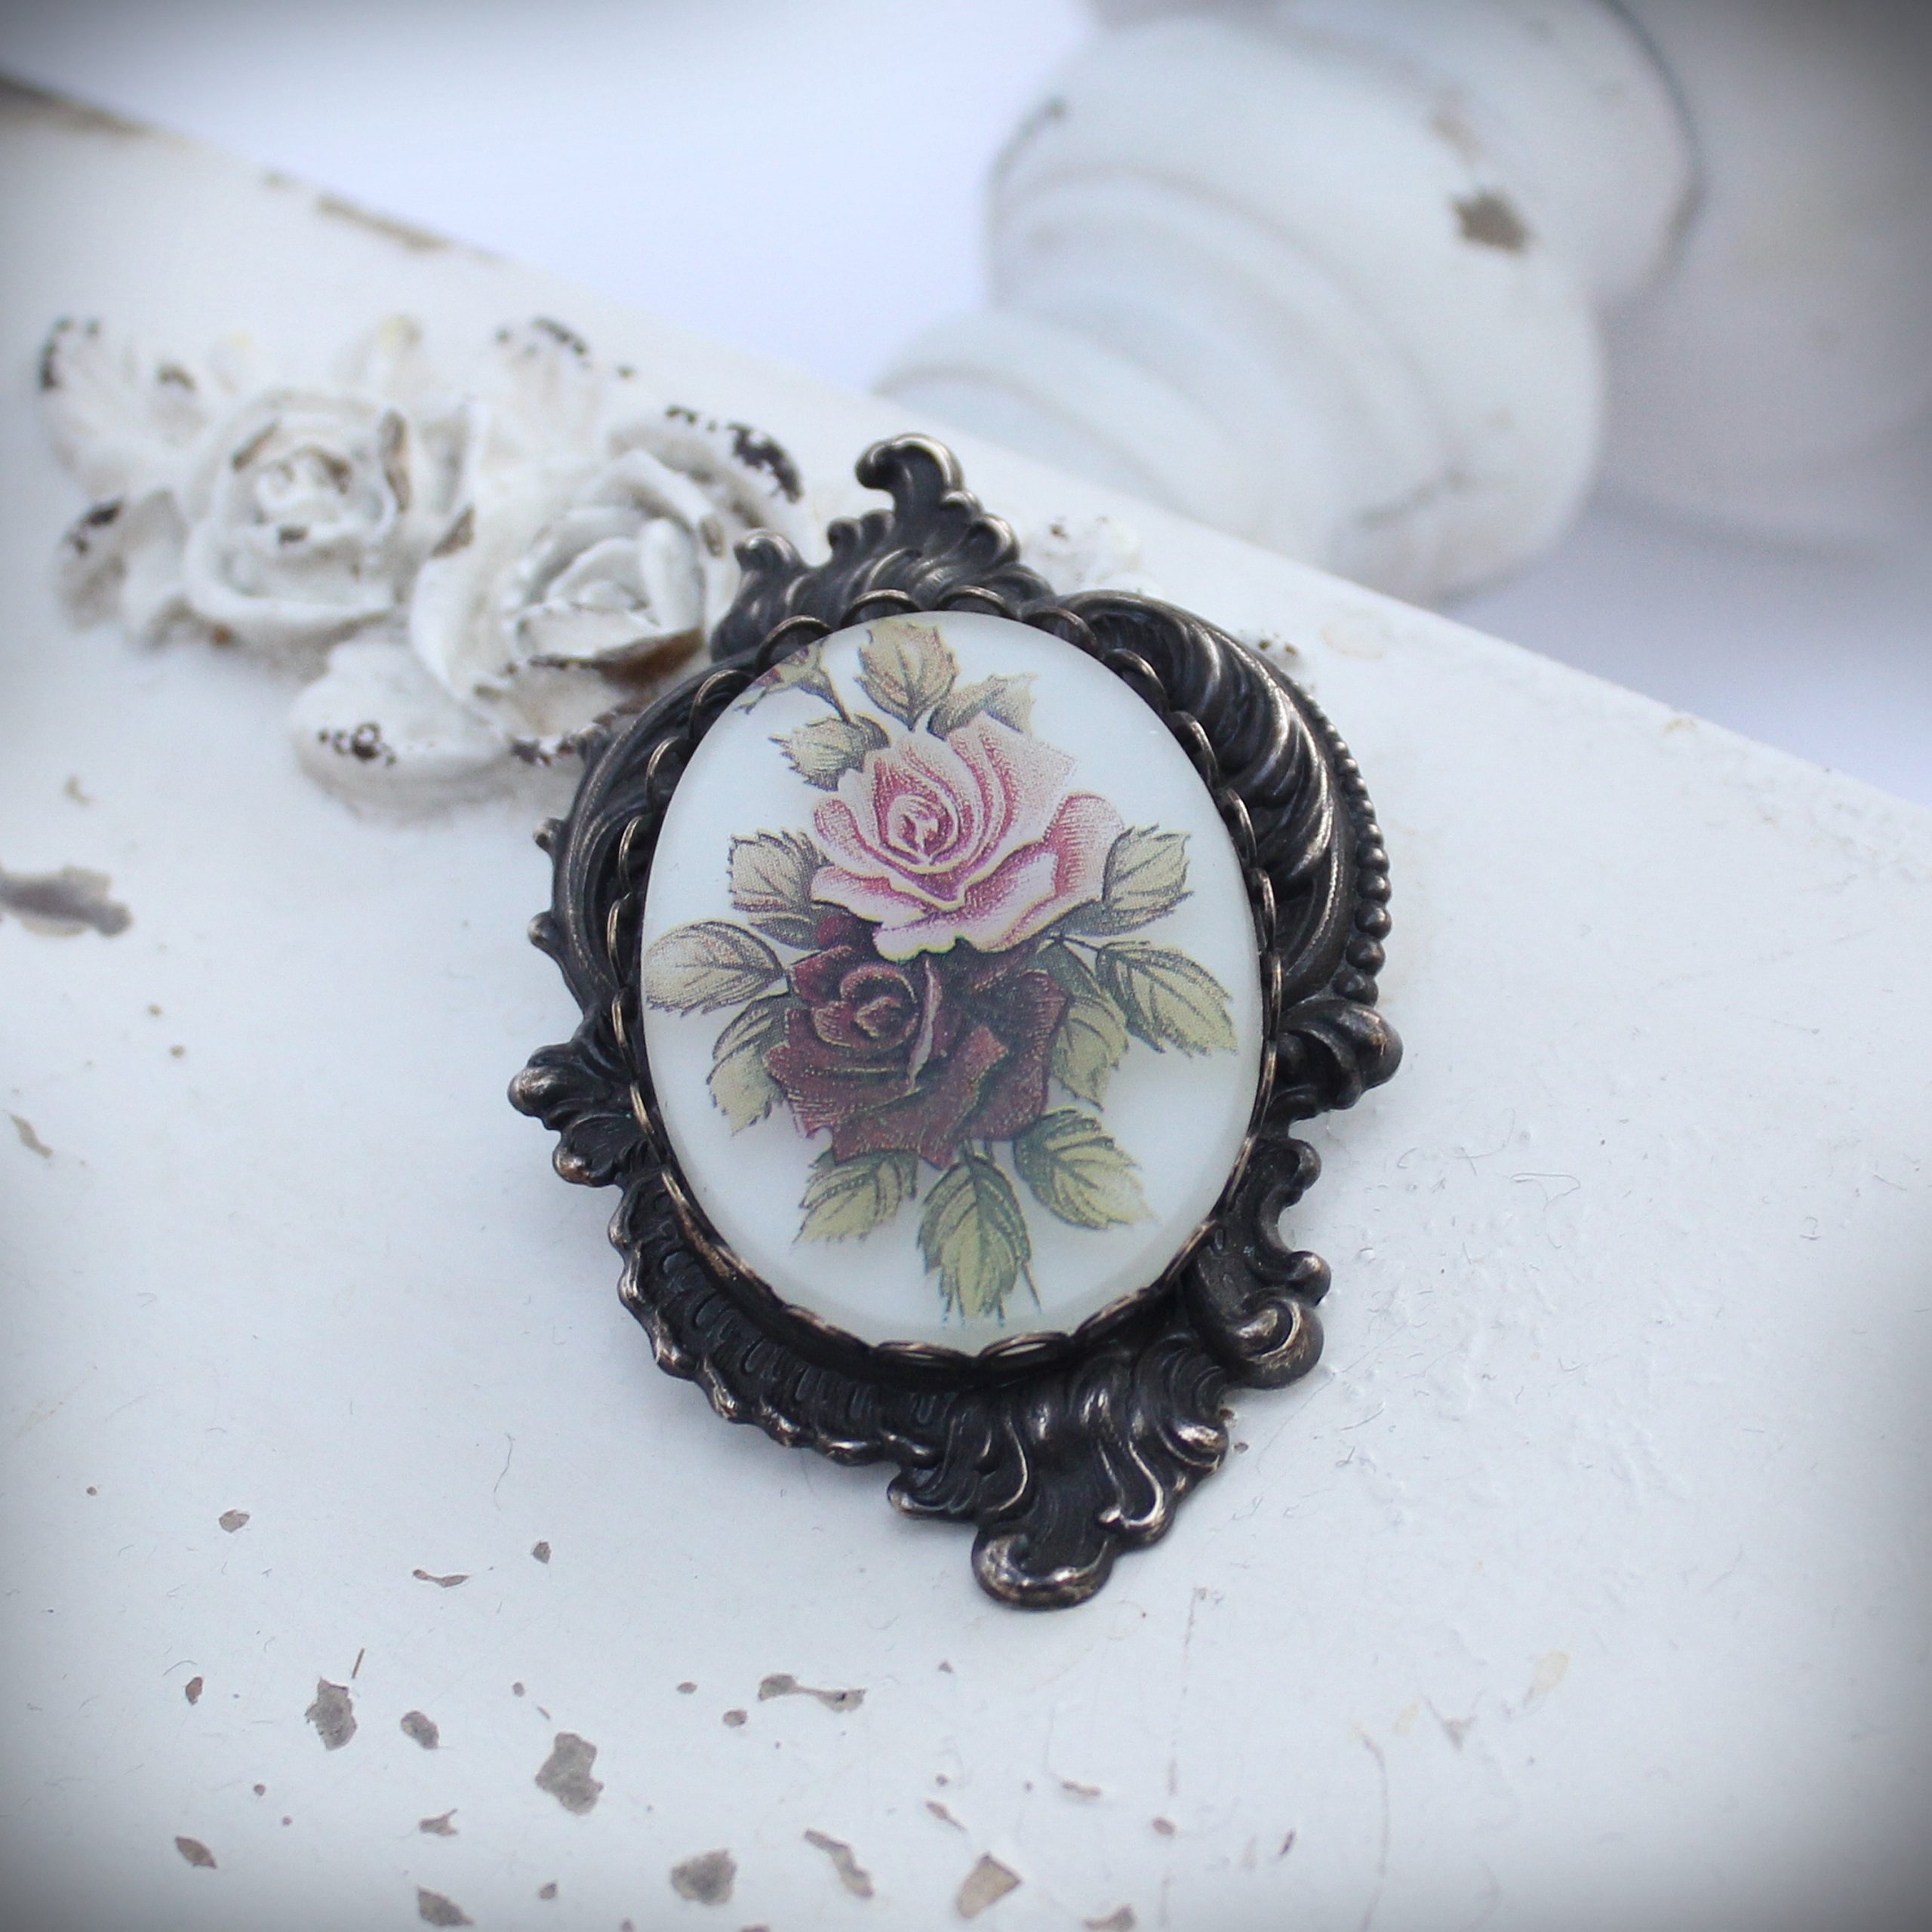 Frosted Floral Large Art Nouveau Brooch and Pendant